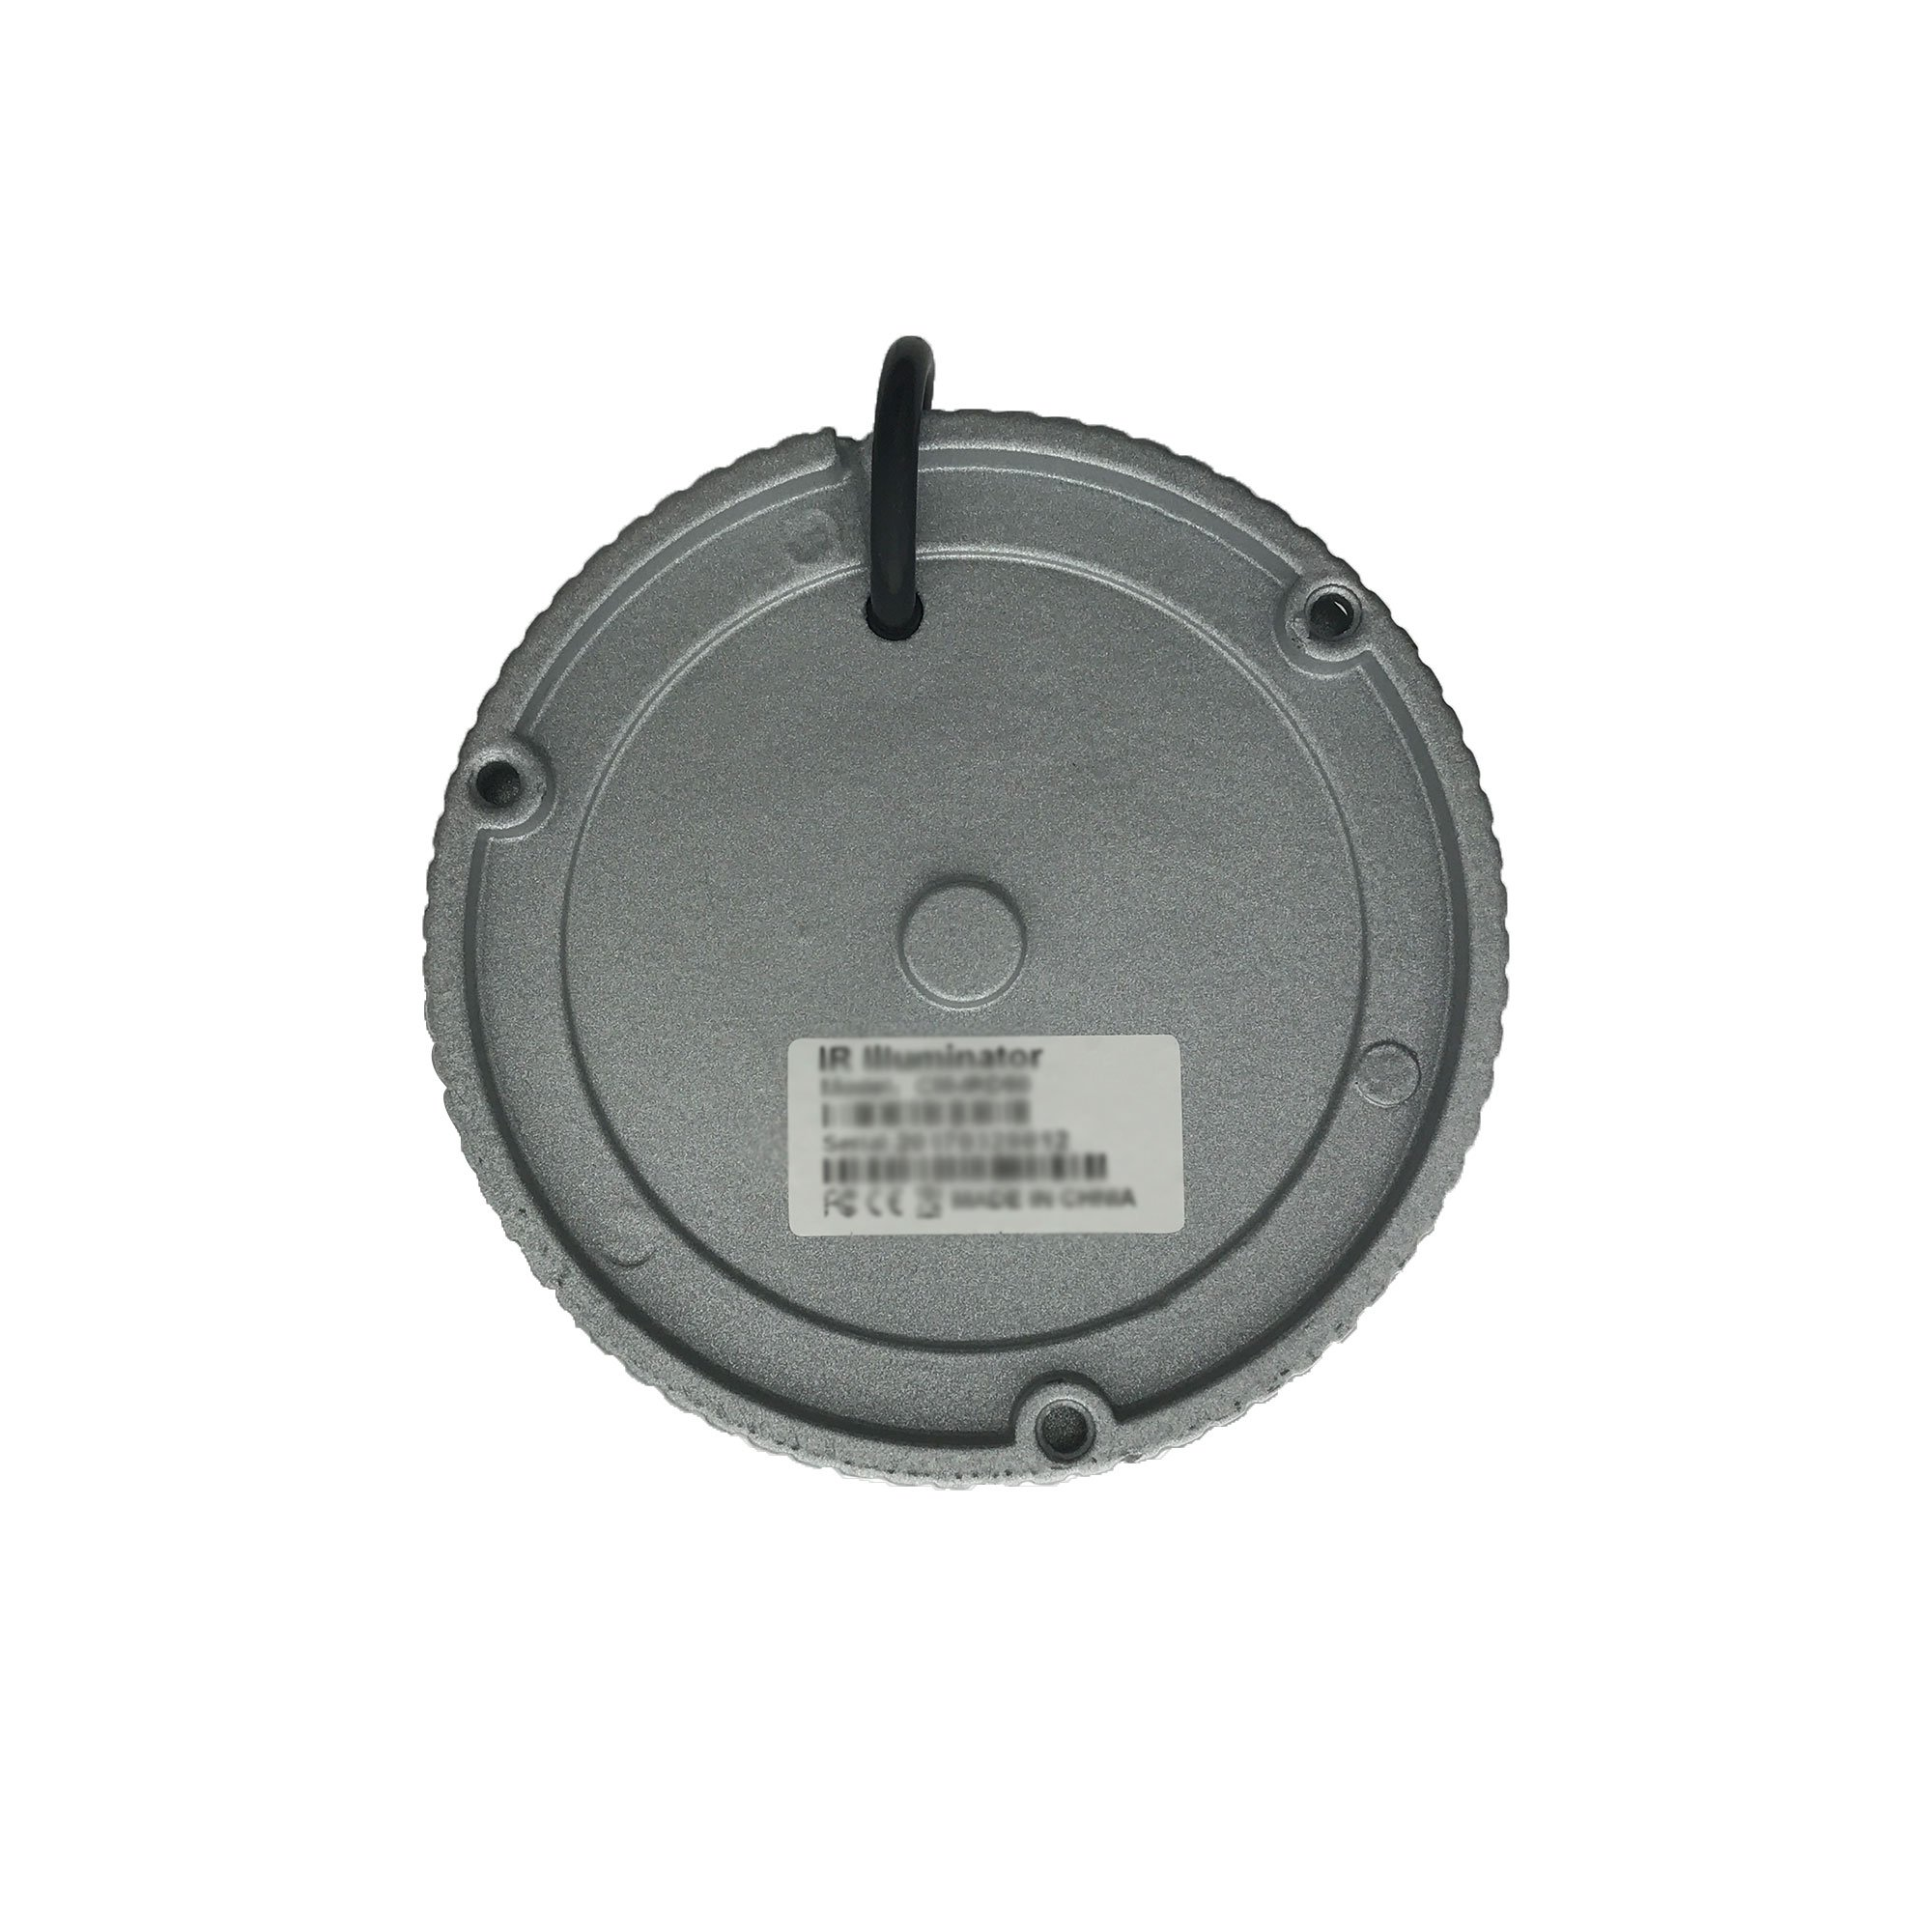 CMVision Wide Angle IRD50-84 LED 120 Degree IR Dome Illuminator with Free 12V 500mA Power by CMVision (Image #2)